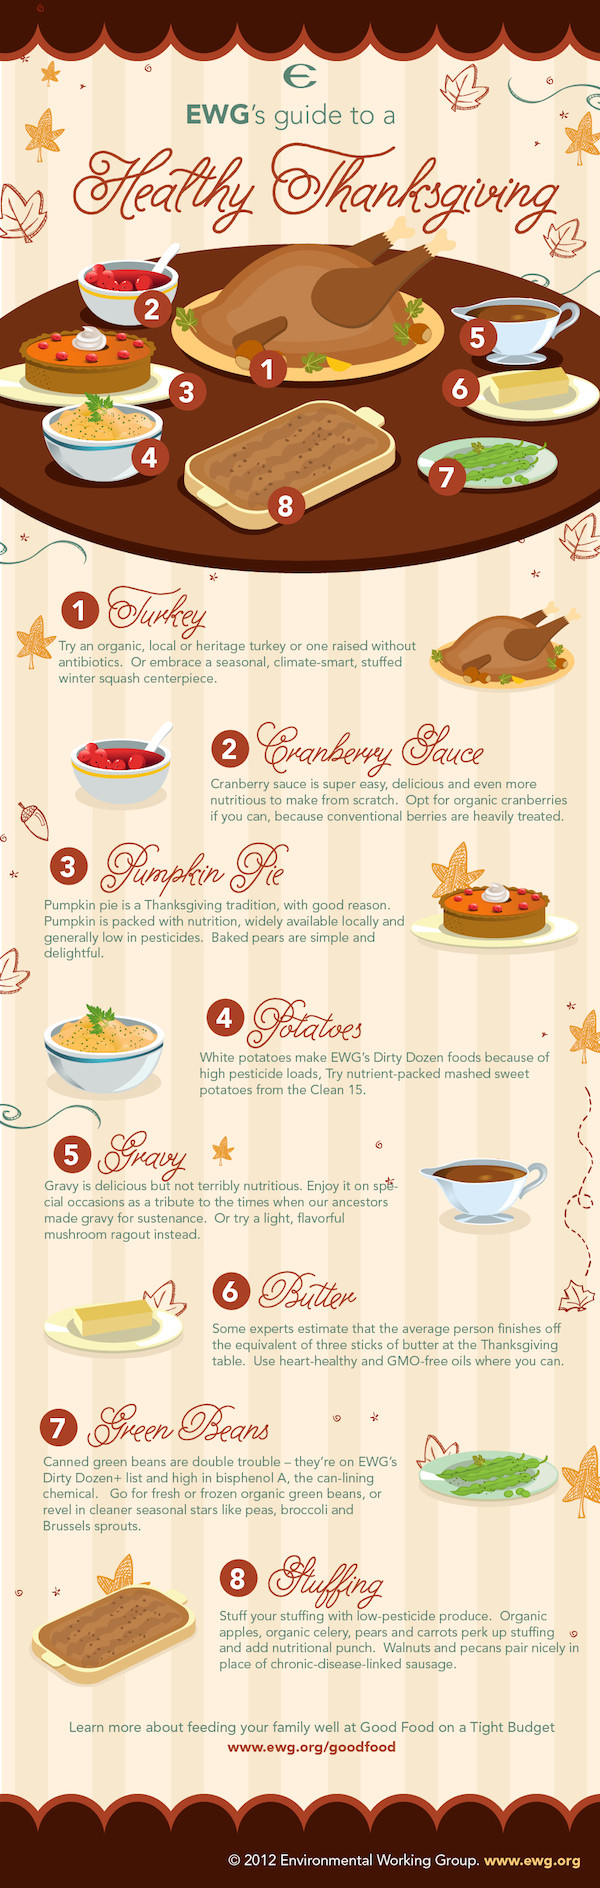 Healthy Thanksgiving Tips  Healthy Thanksgiving Tips for a Fit Feast [Infographic